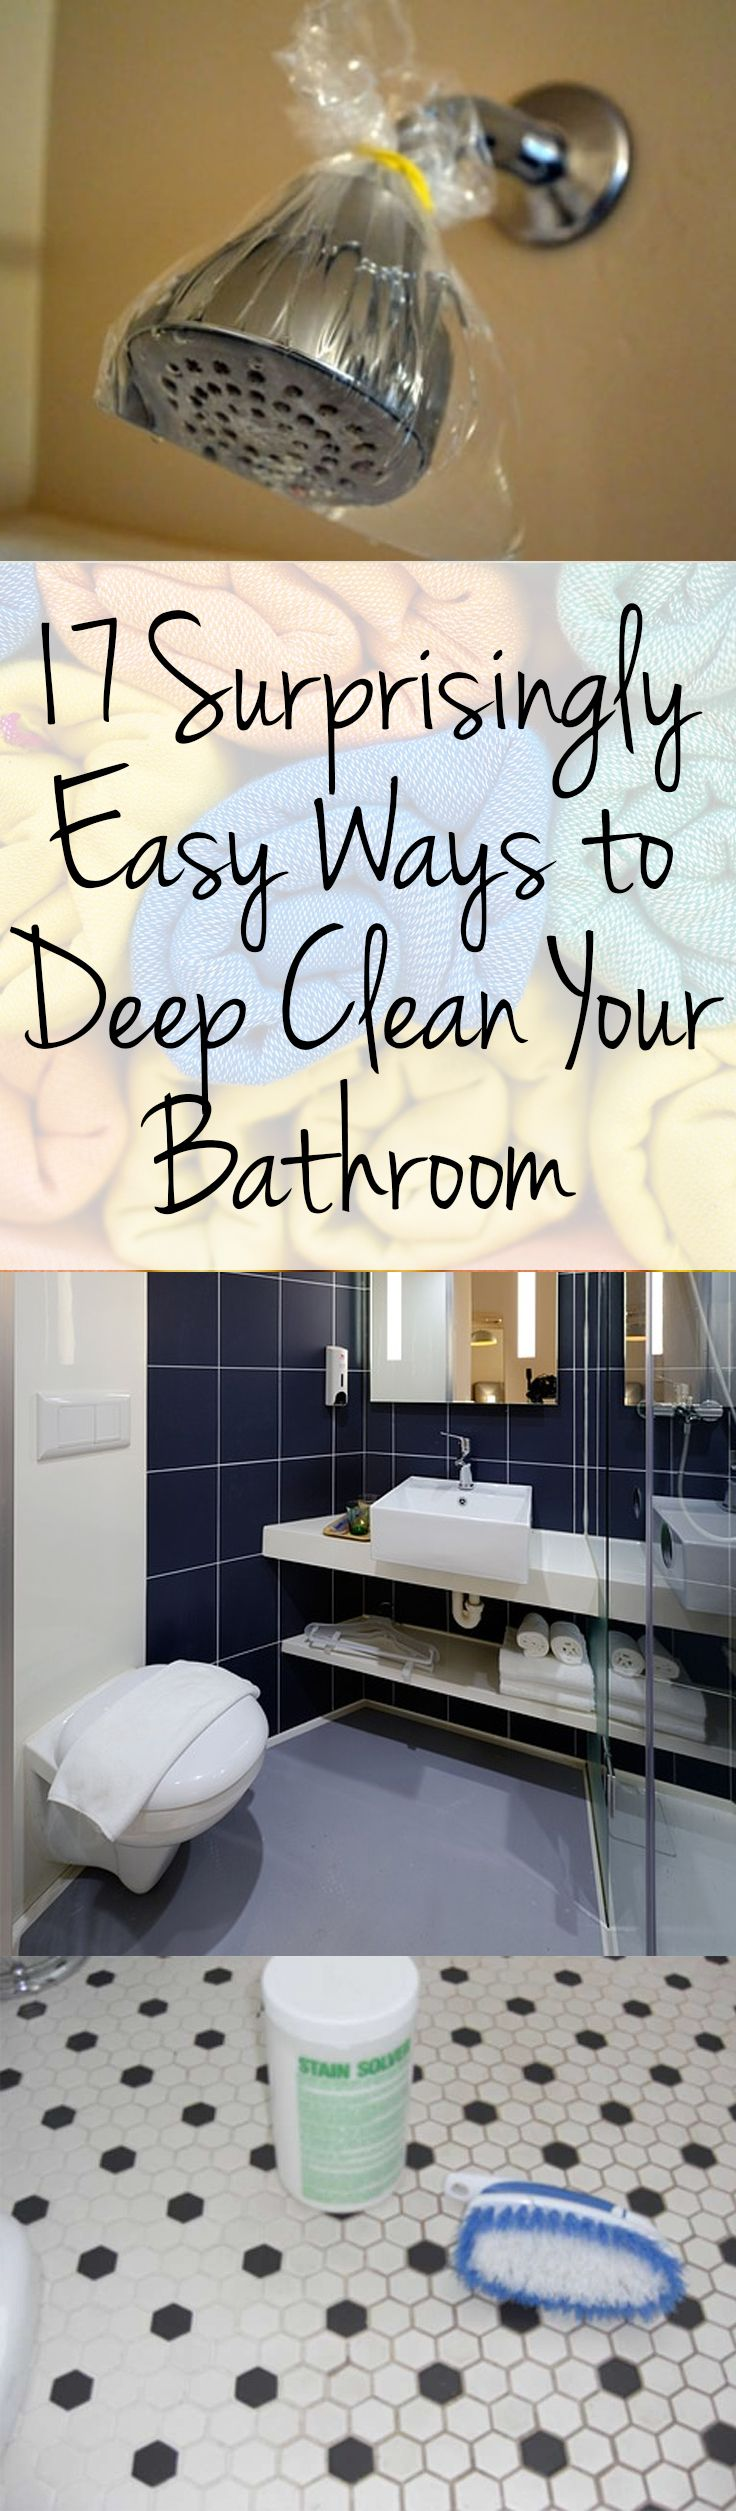 17 Surprisingly Easy Ways To Deep Clean Your Bathroom U2013 Page 19 U2013 Wrapped  In Rust